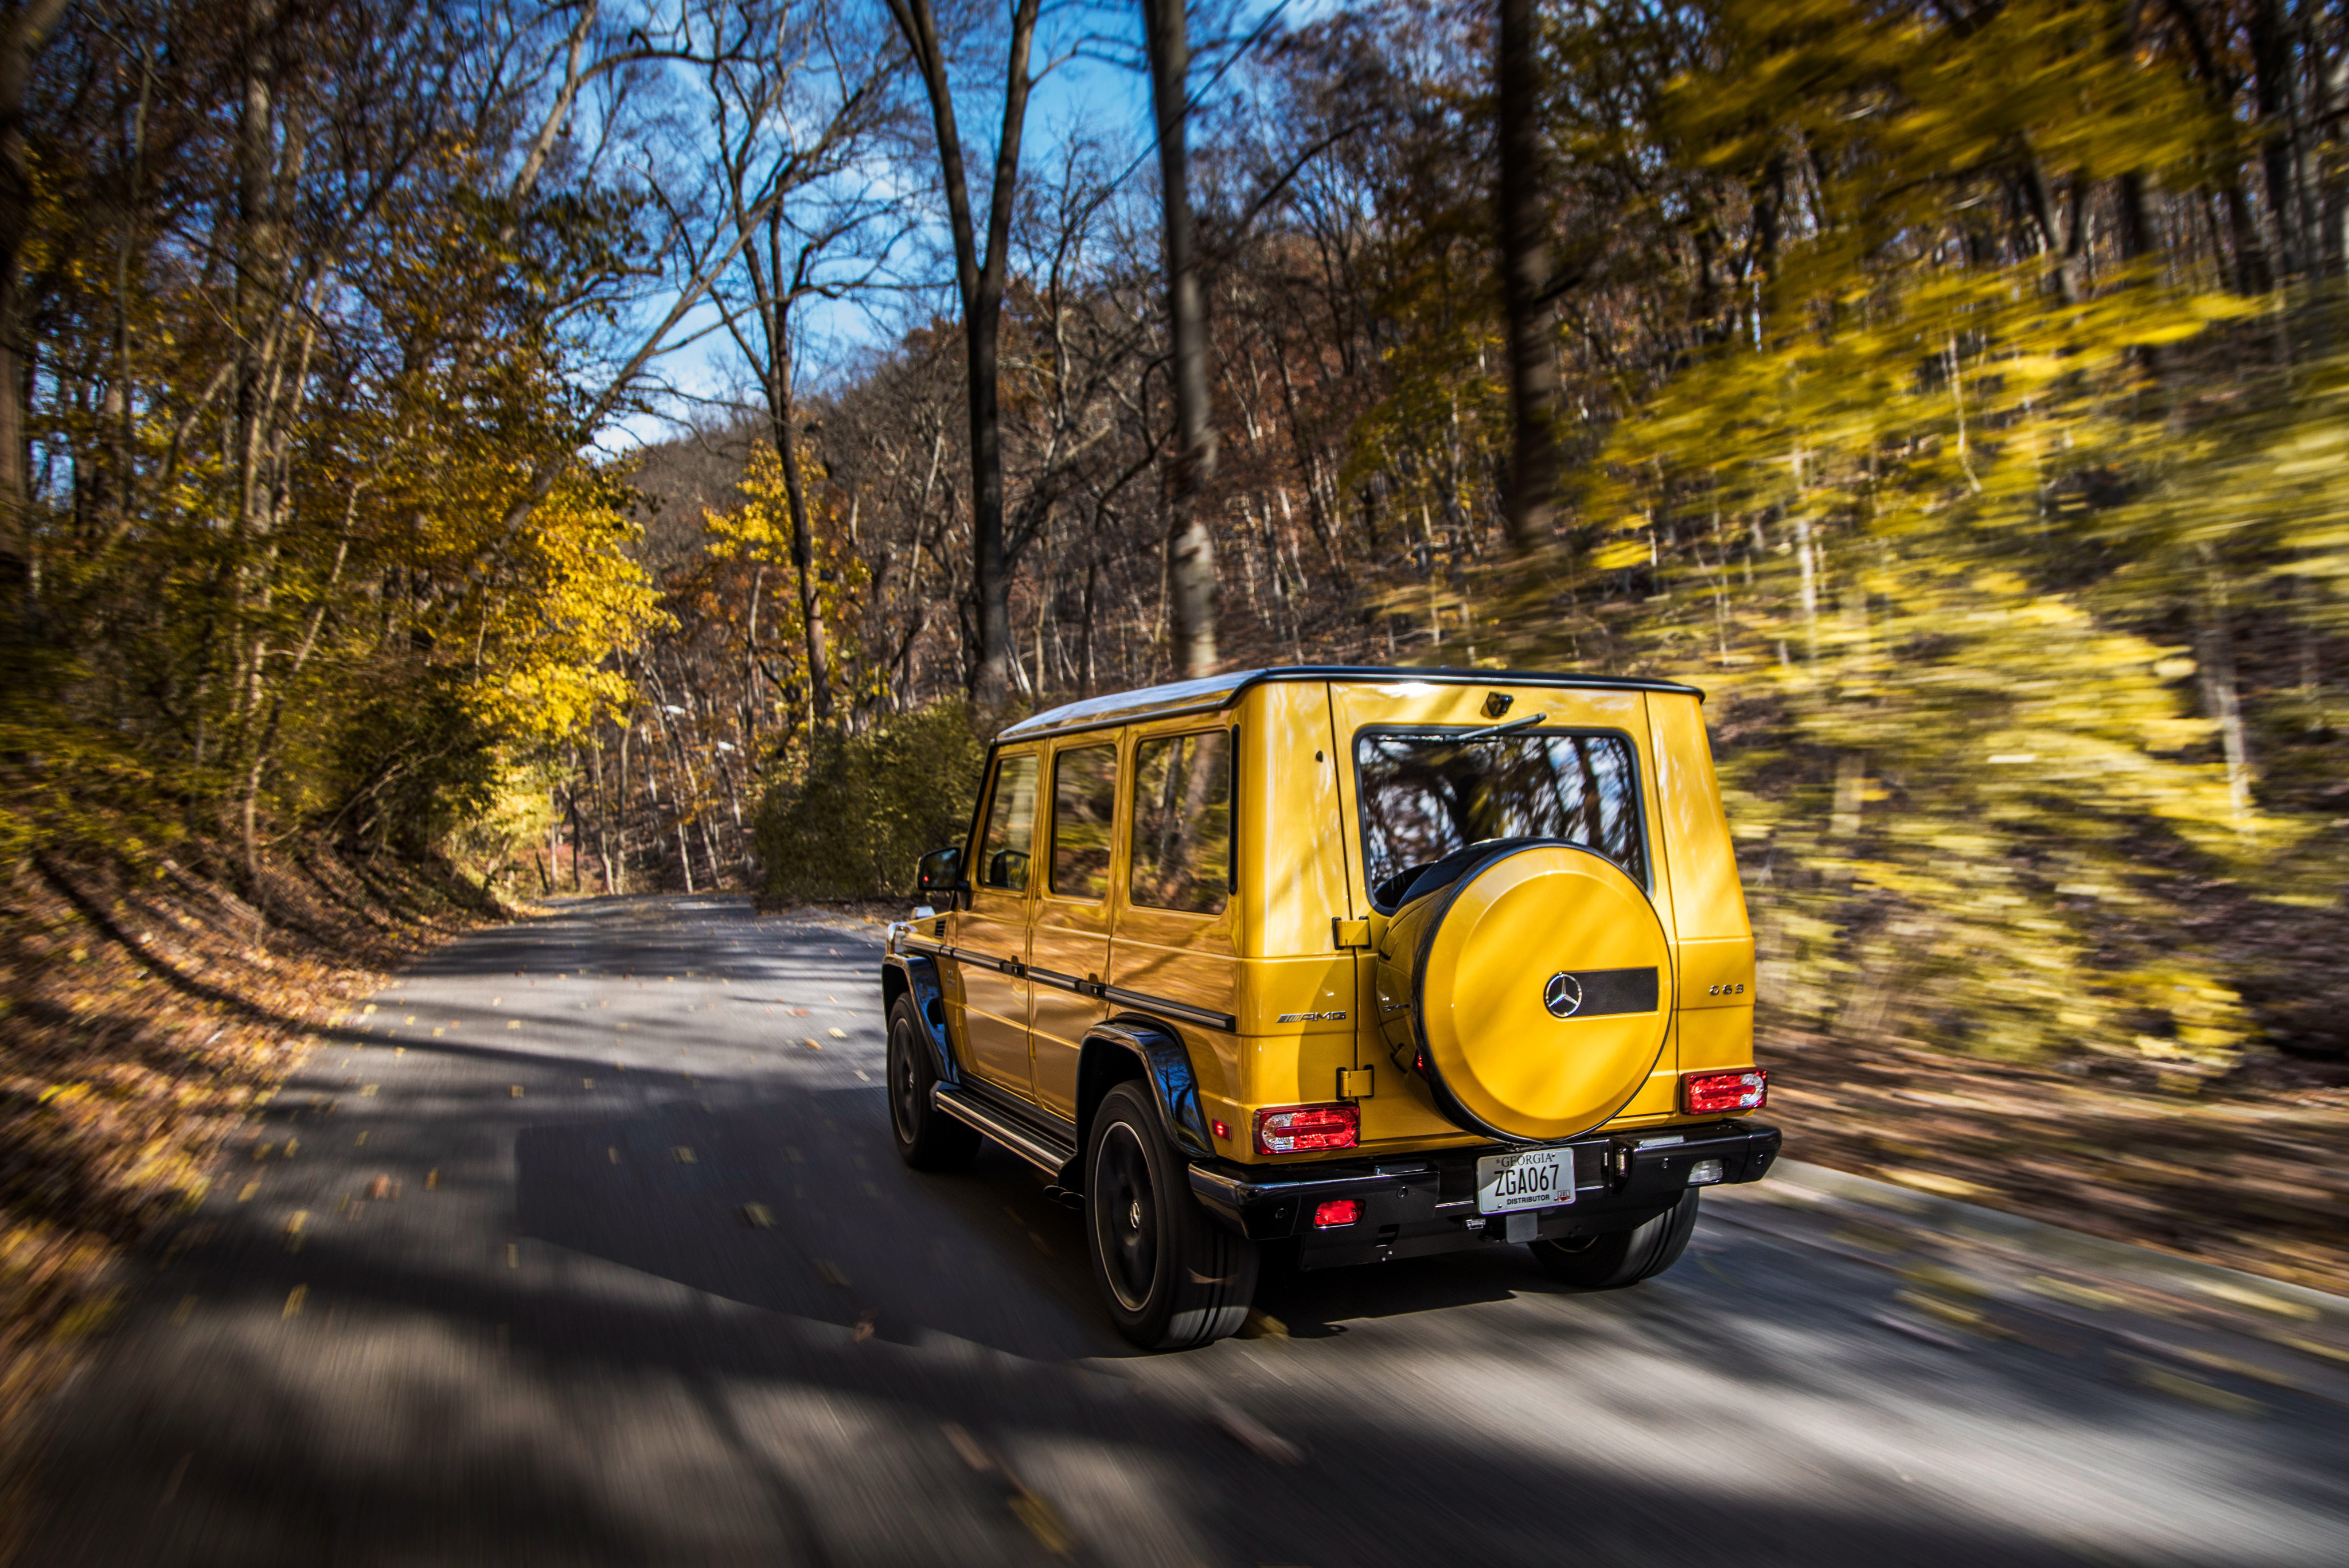 Mercedes AMG G63 Rear, HD Cars, 4k Wallpapers, Images ...